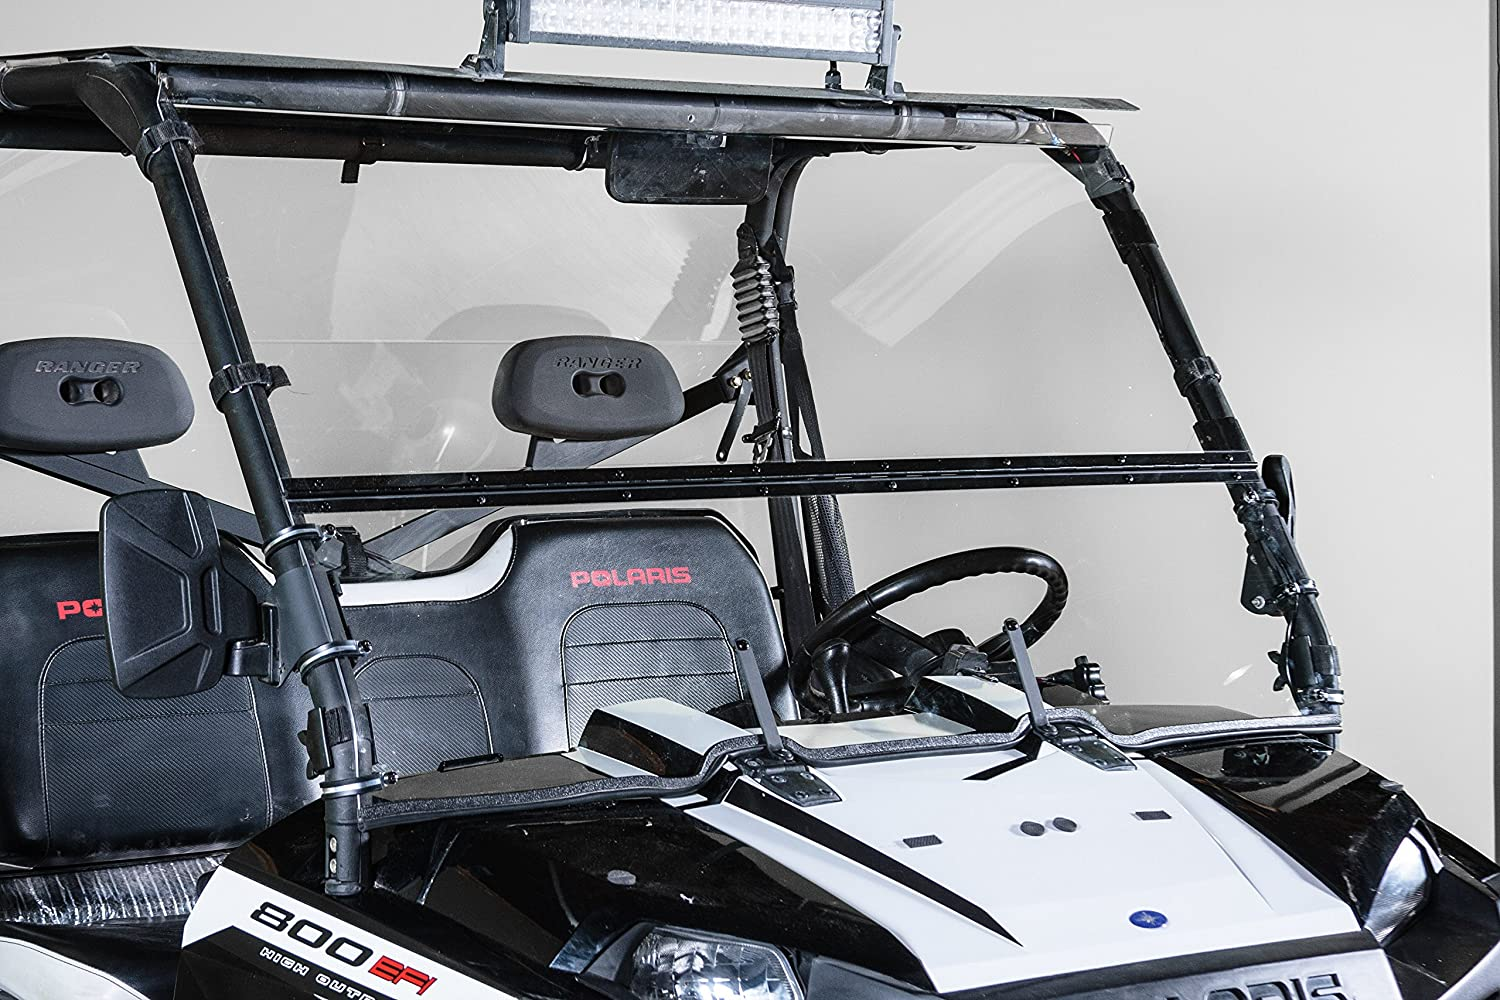 POLARIS RANGER FULL SIZE (2009 XP, 2010-2014) FULL-TILT WINDSHIELD (Does  not fit 900 OR Mid Size)  Best of both worlds Half when you want and Full